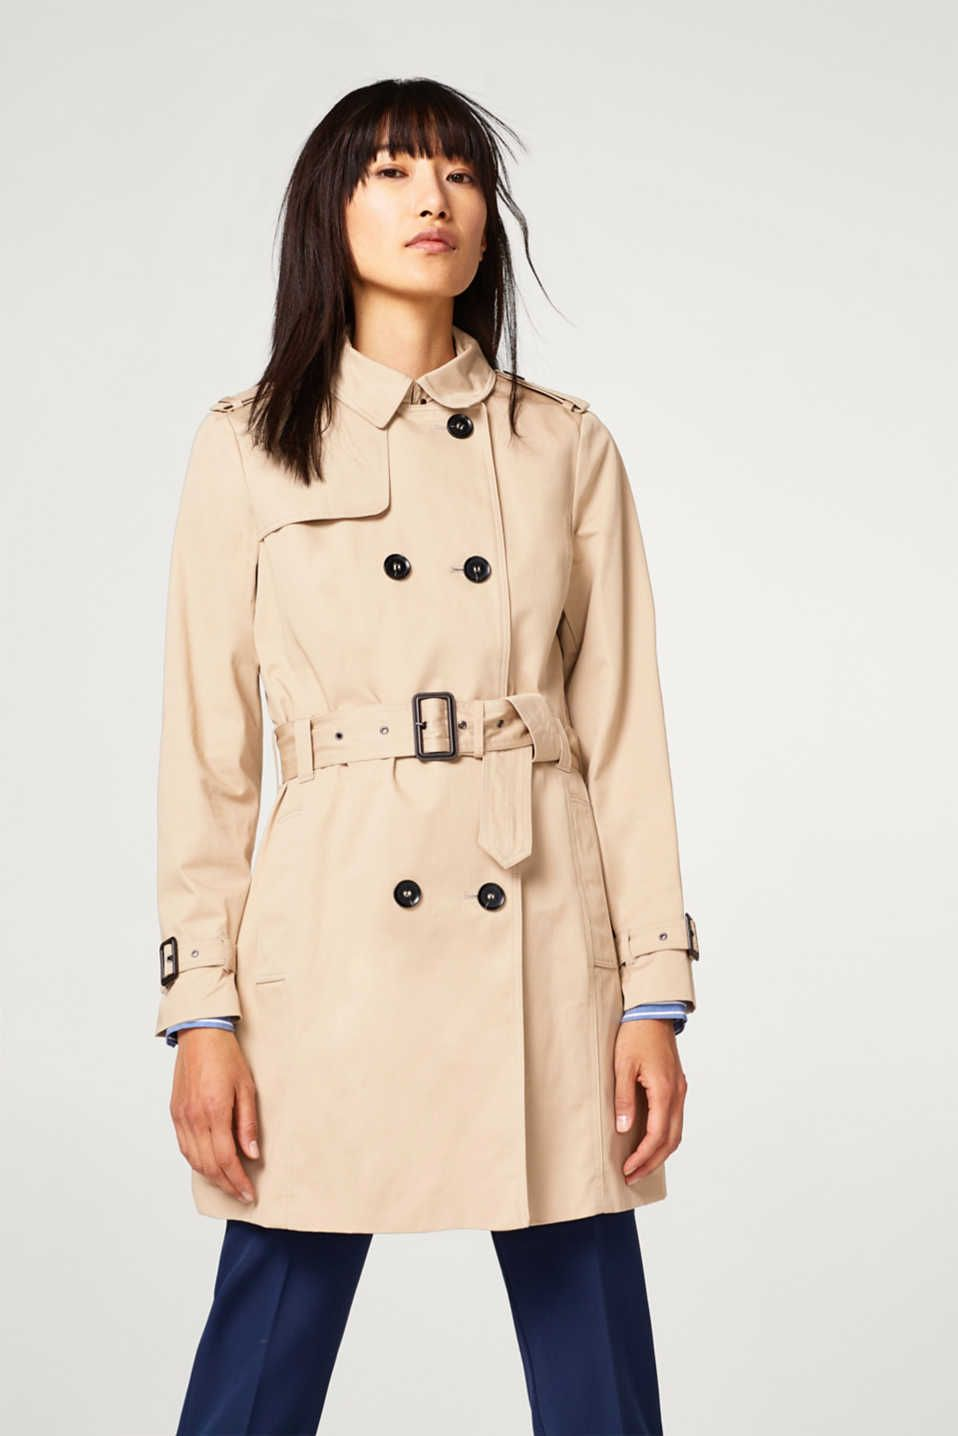 Esprit Classic Trench Coat In Cotton Classic Trench Coat Fashion Trench Coat [ 1436 x 958 Pixel ]